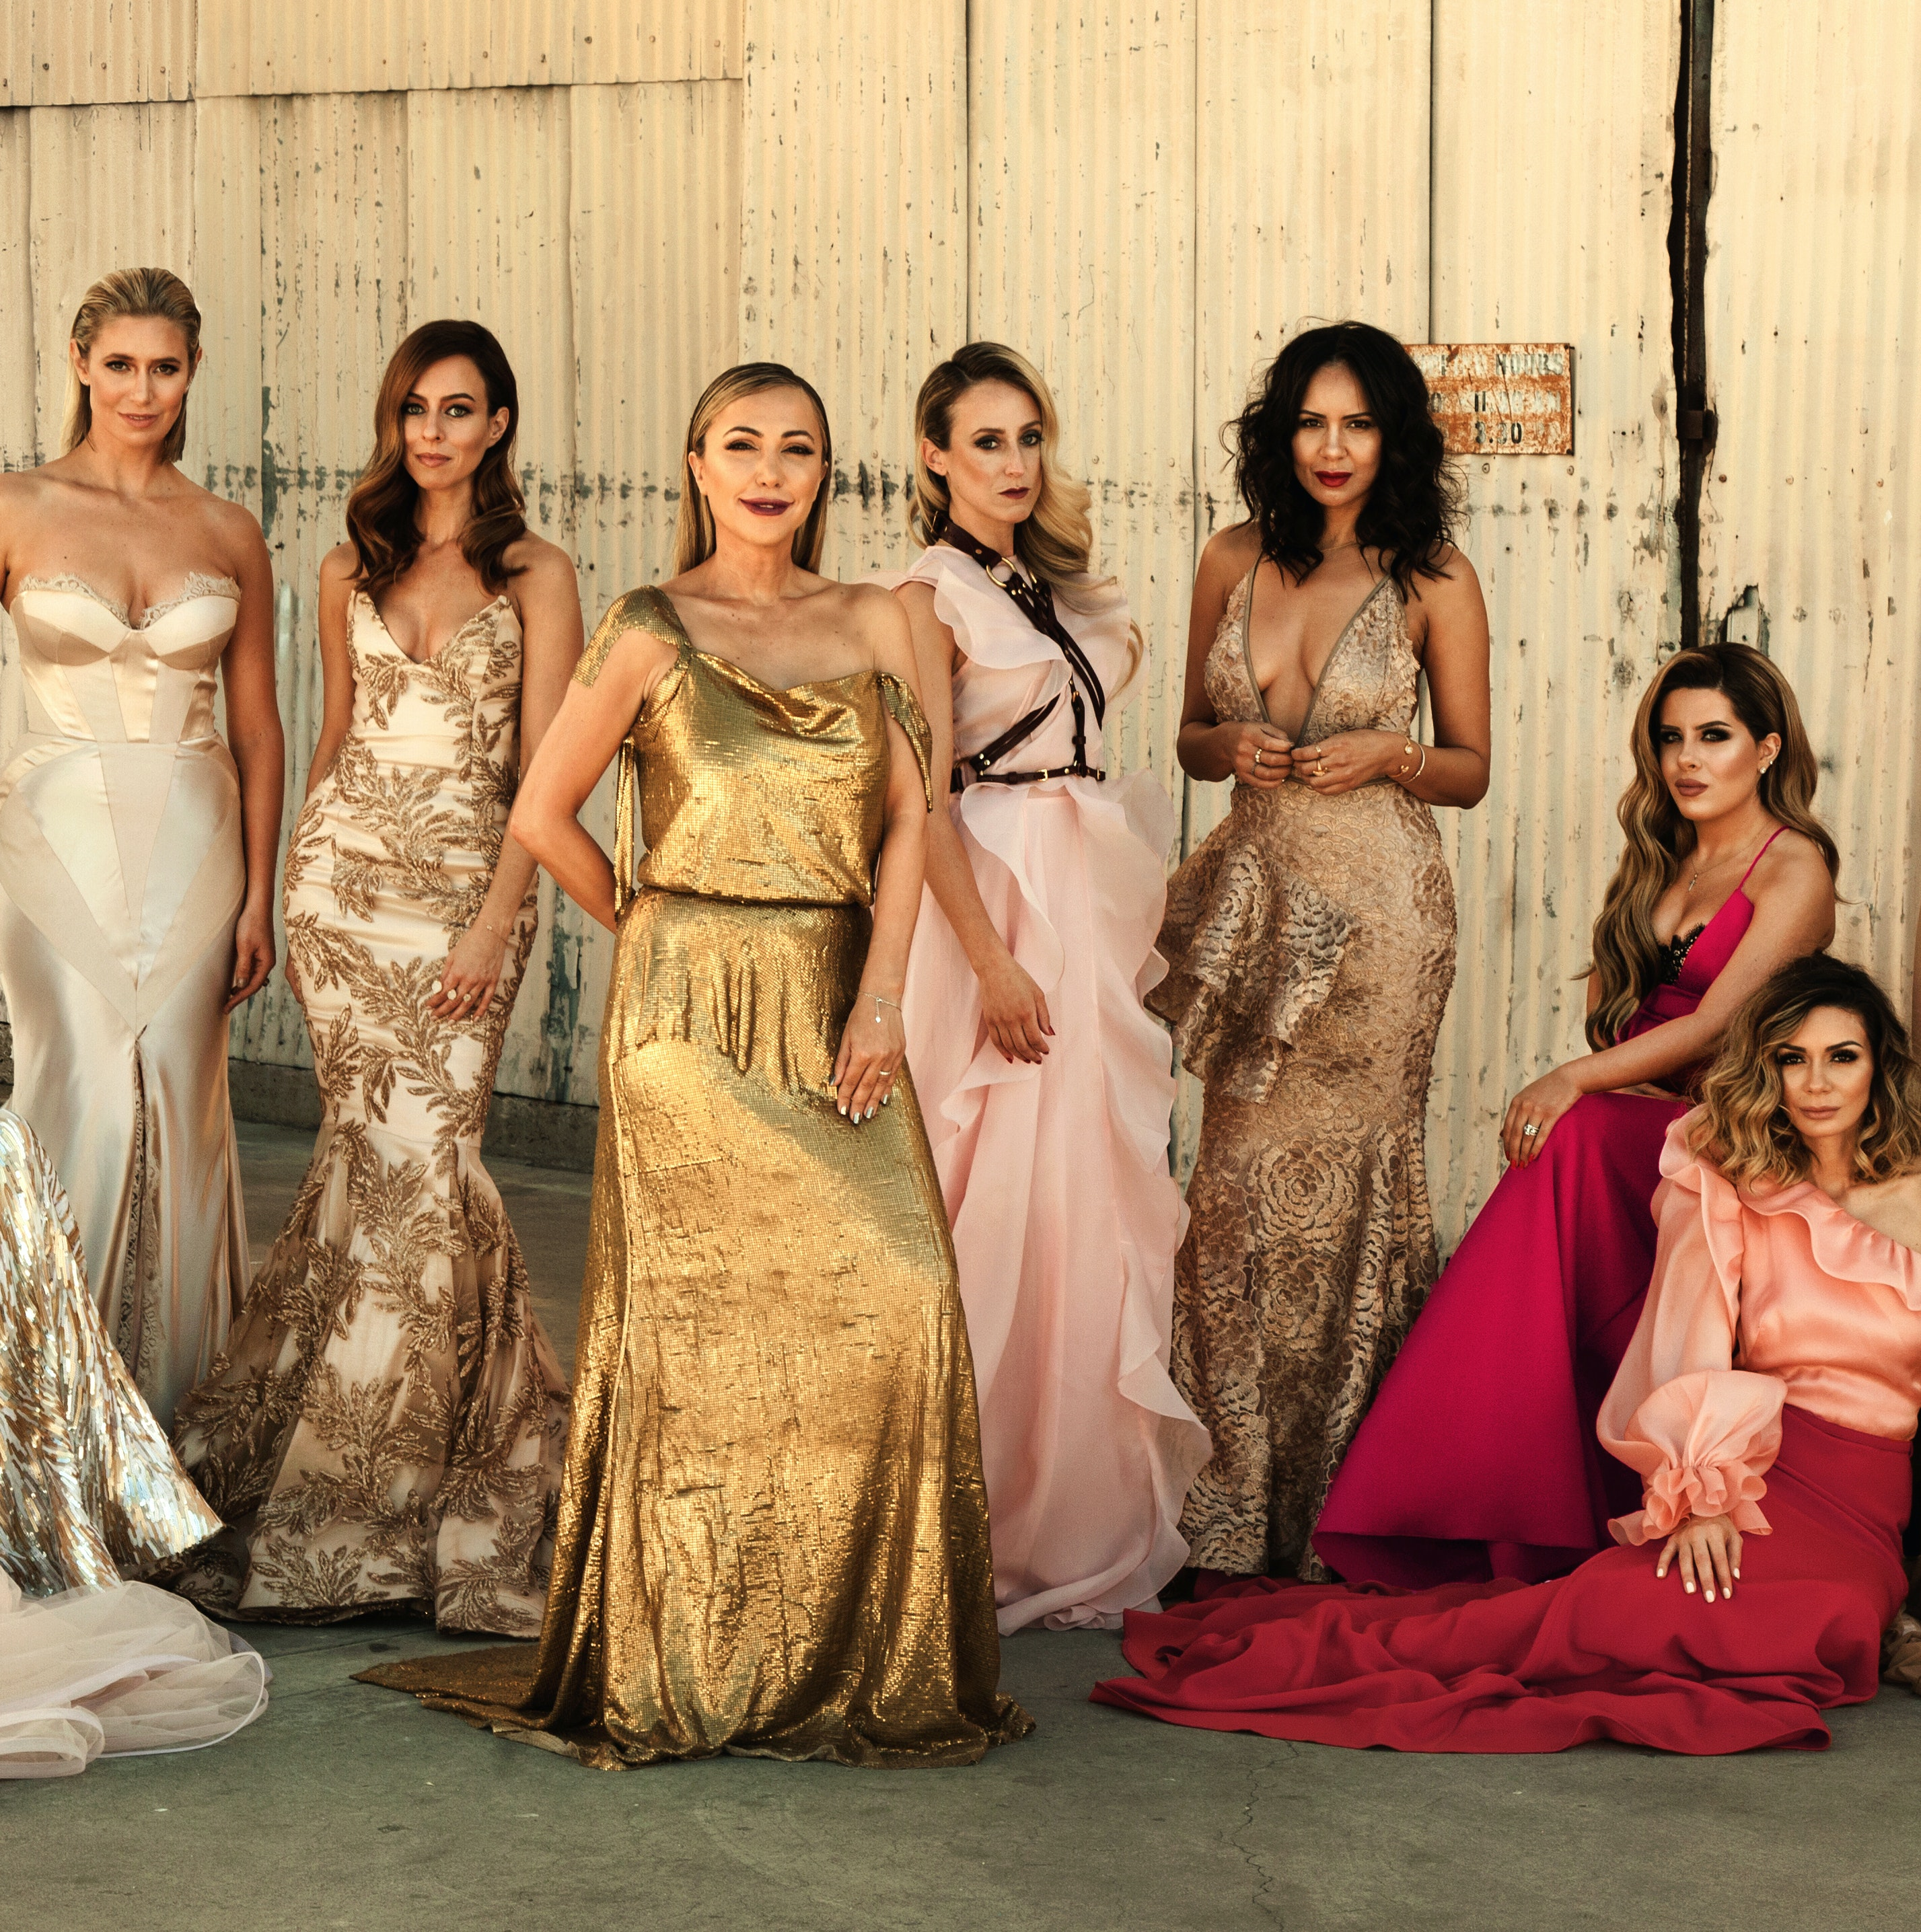 SASSOON BEVERLY HILLS STYLES VANITY FAIR INSPIRED SHOOT | #THESOCIALEDITION